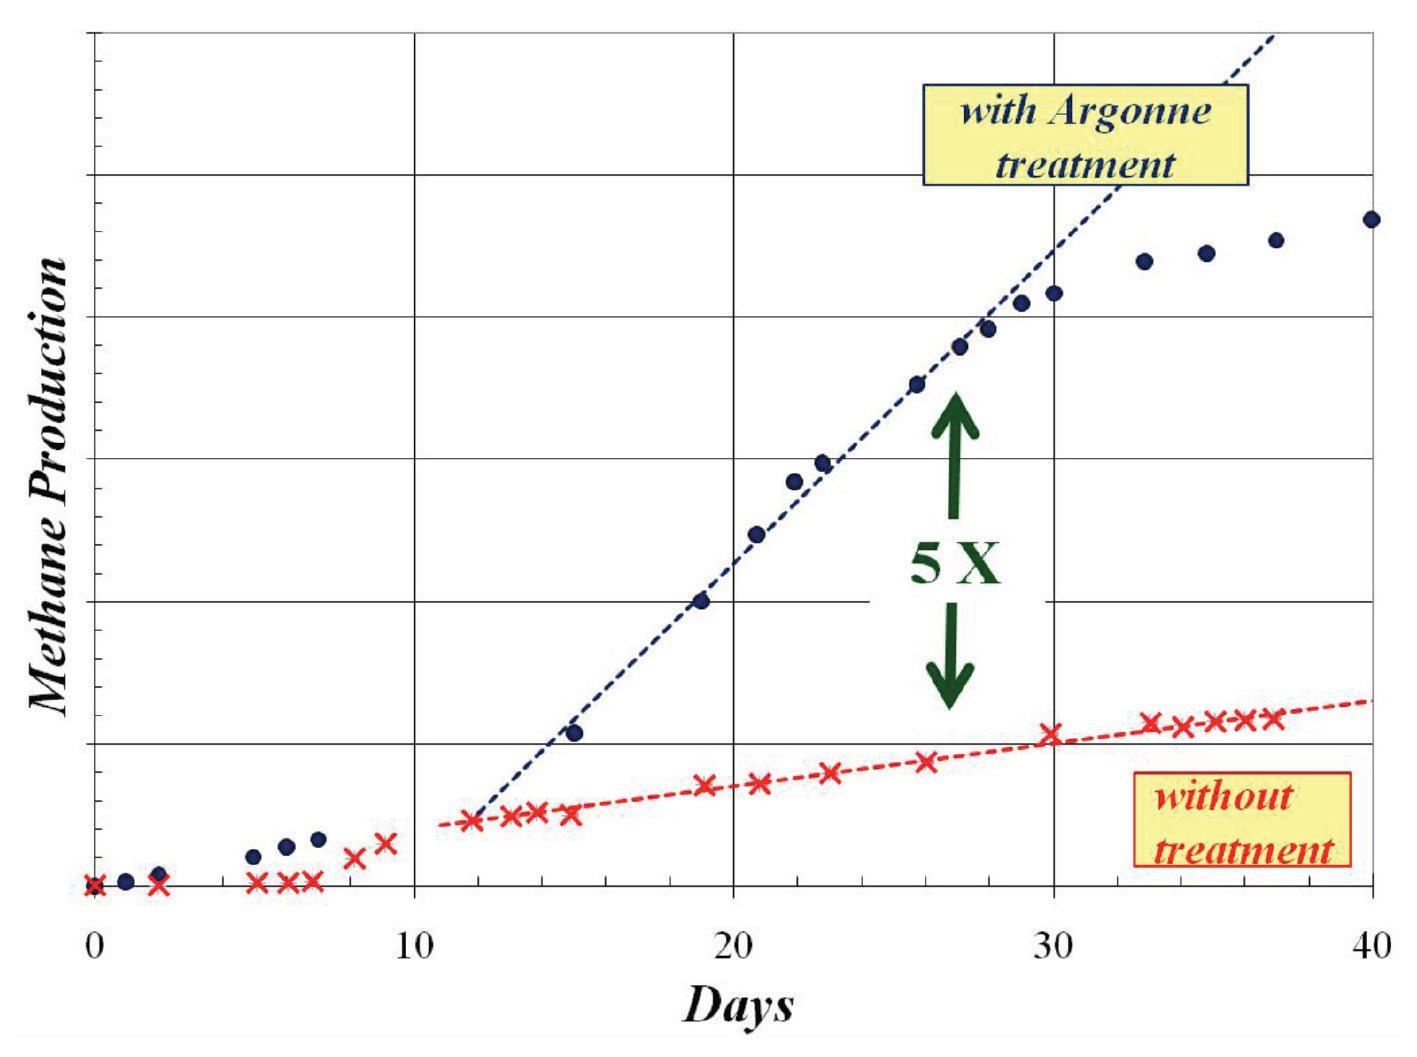 Enhanced Renewable Methane Production System Benefits Wastewater Piping Instrumentation Diagram Water Treatment Plant Argonnes Can Accelerate Biological Rates At Least Fivefold